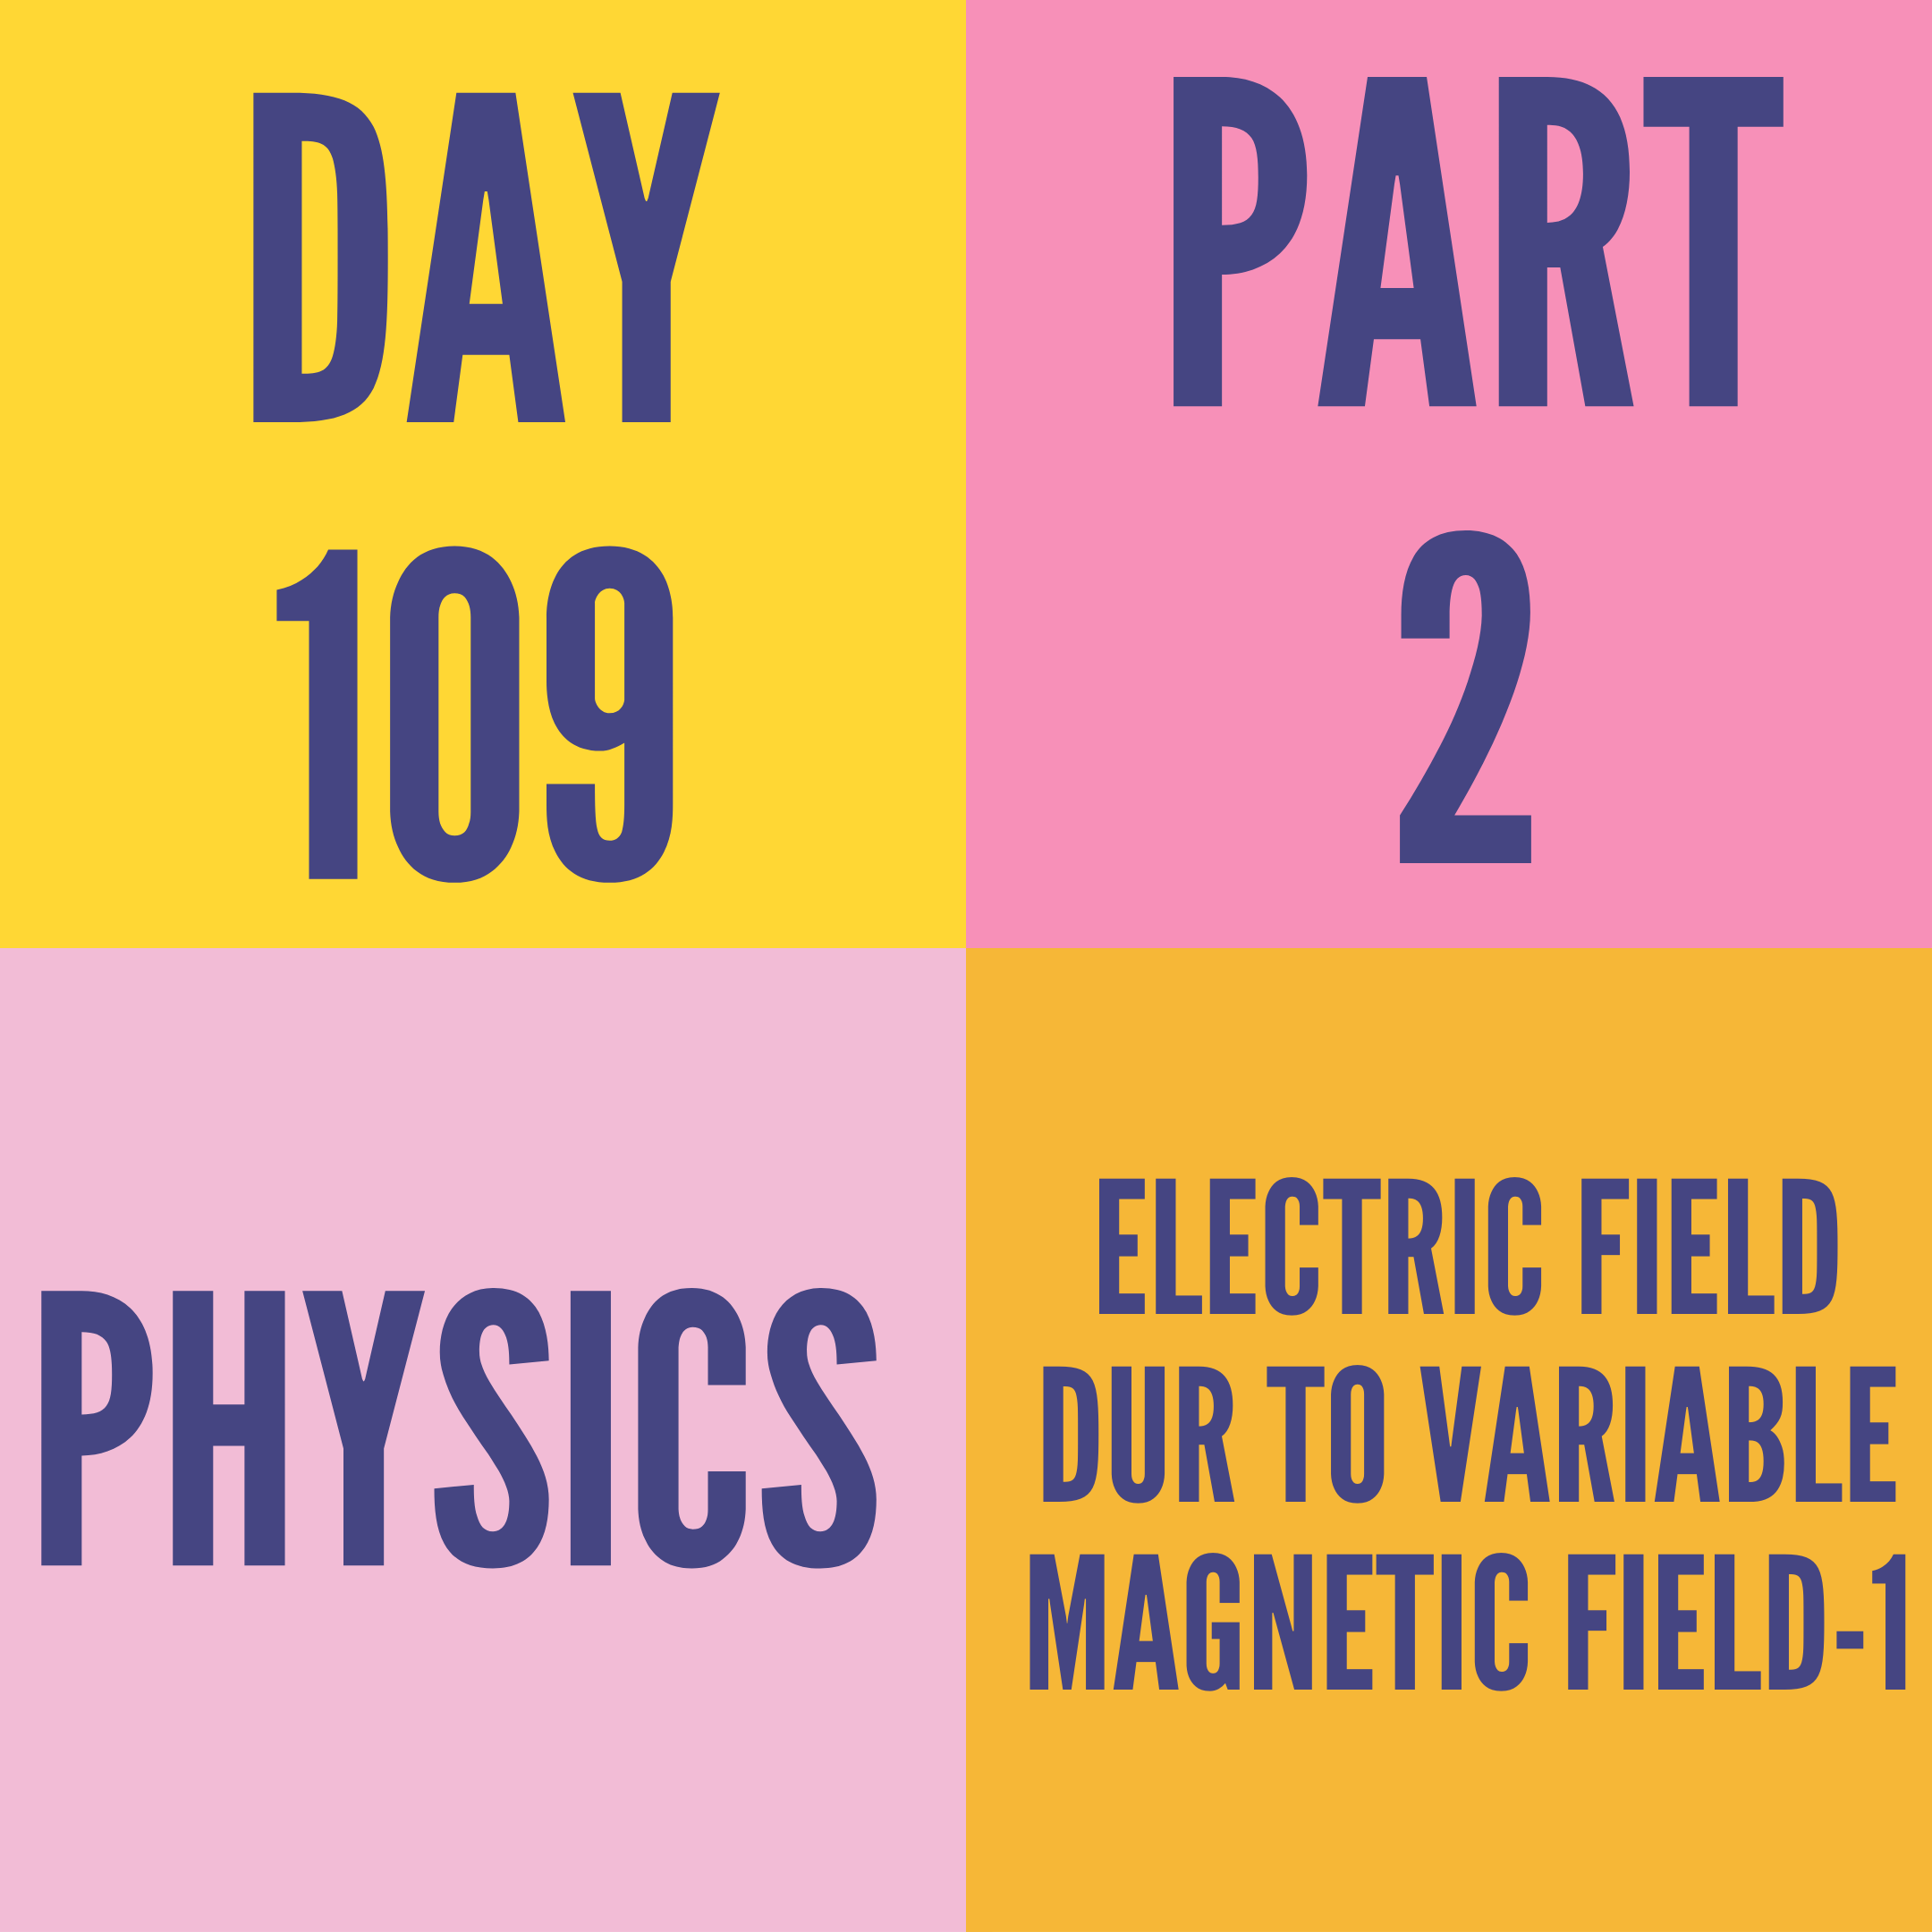 DAY-109 PART-2 ELECTRIC FIELD DUR TO VARIABLE MAGNETIC FIELD-1